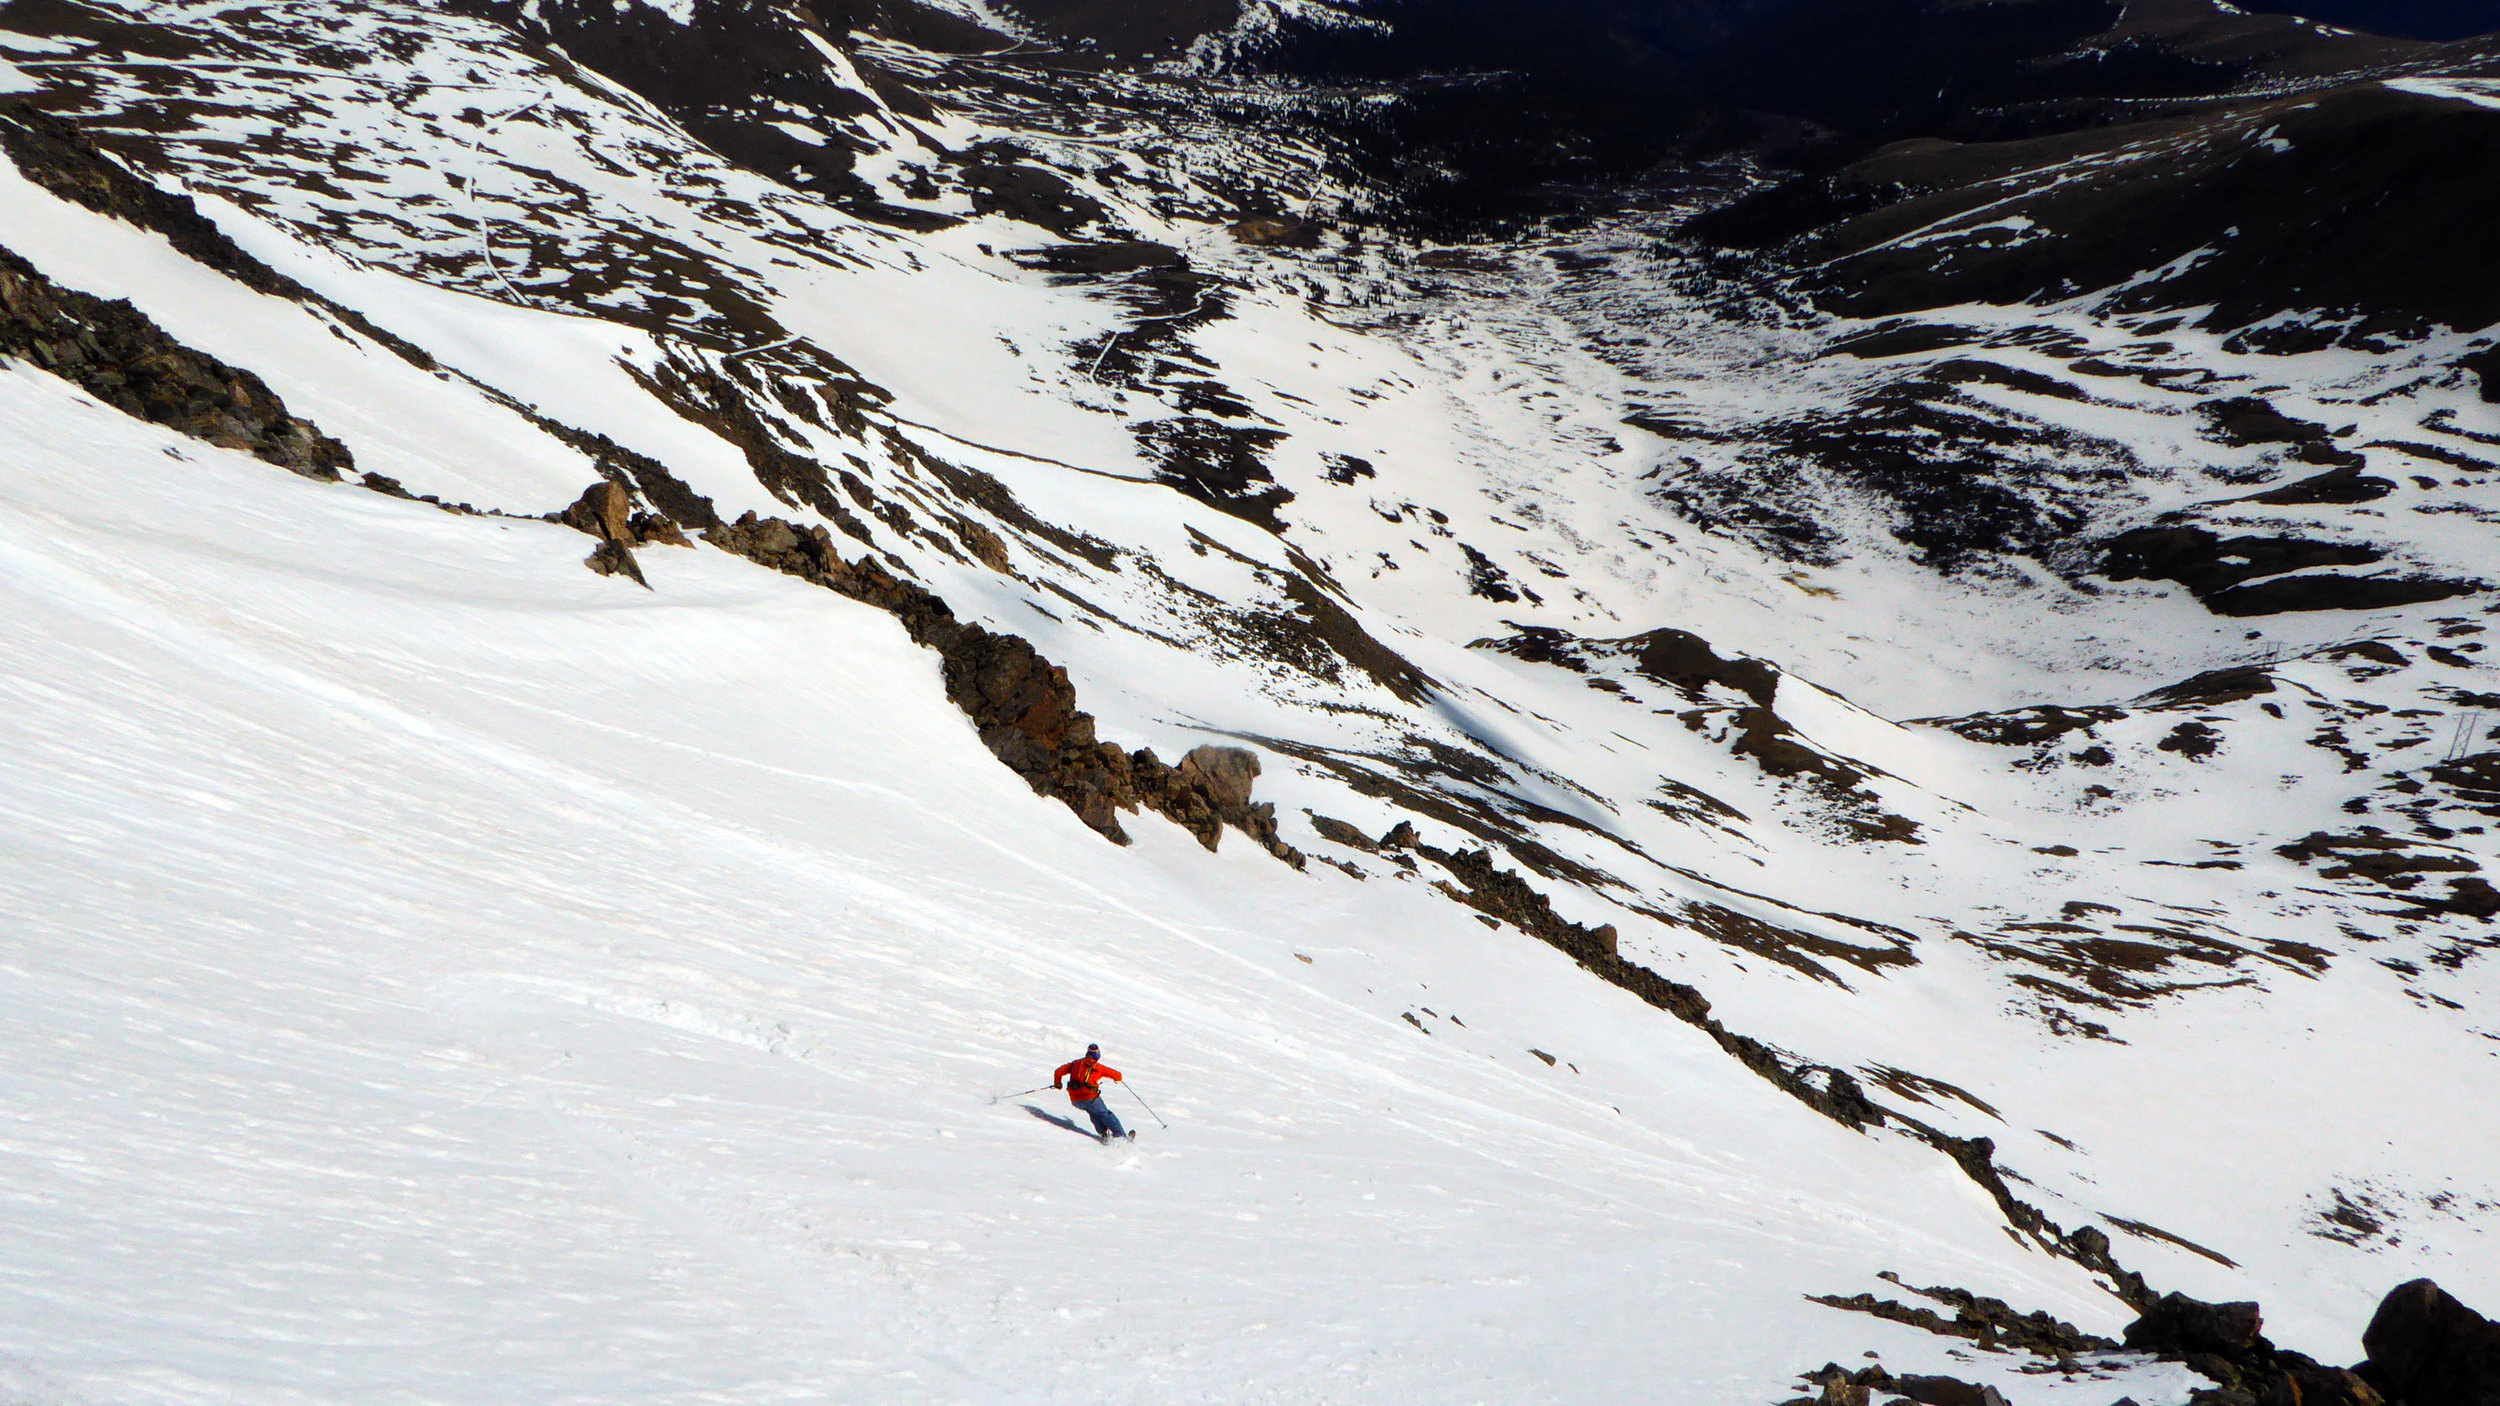 Skiing the fall line of Voltage Drop.